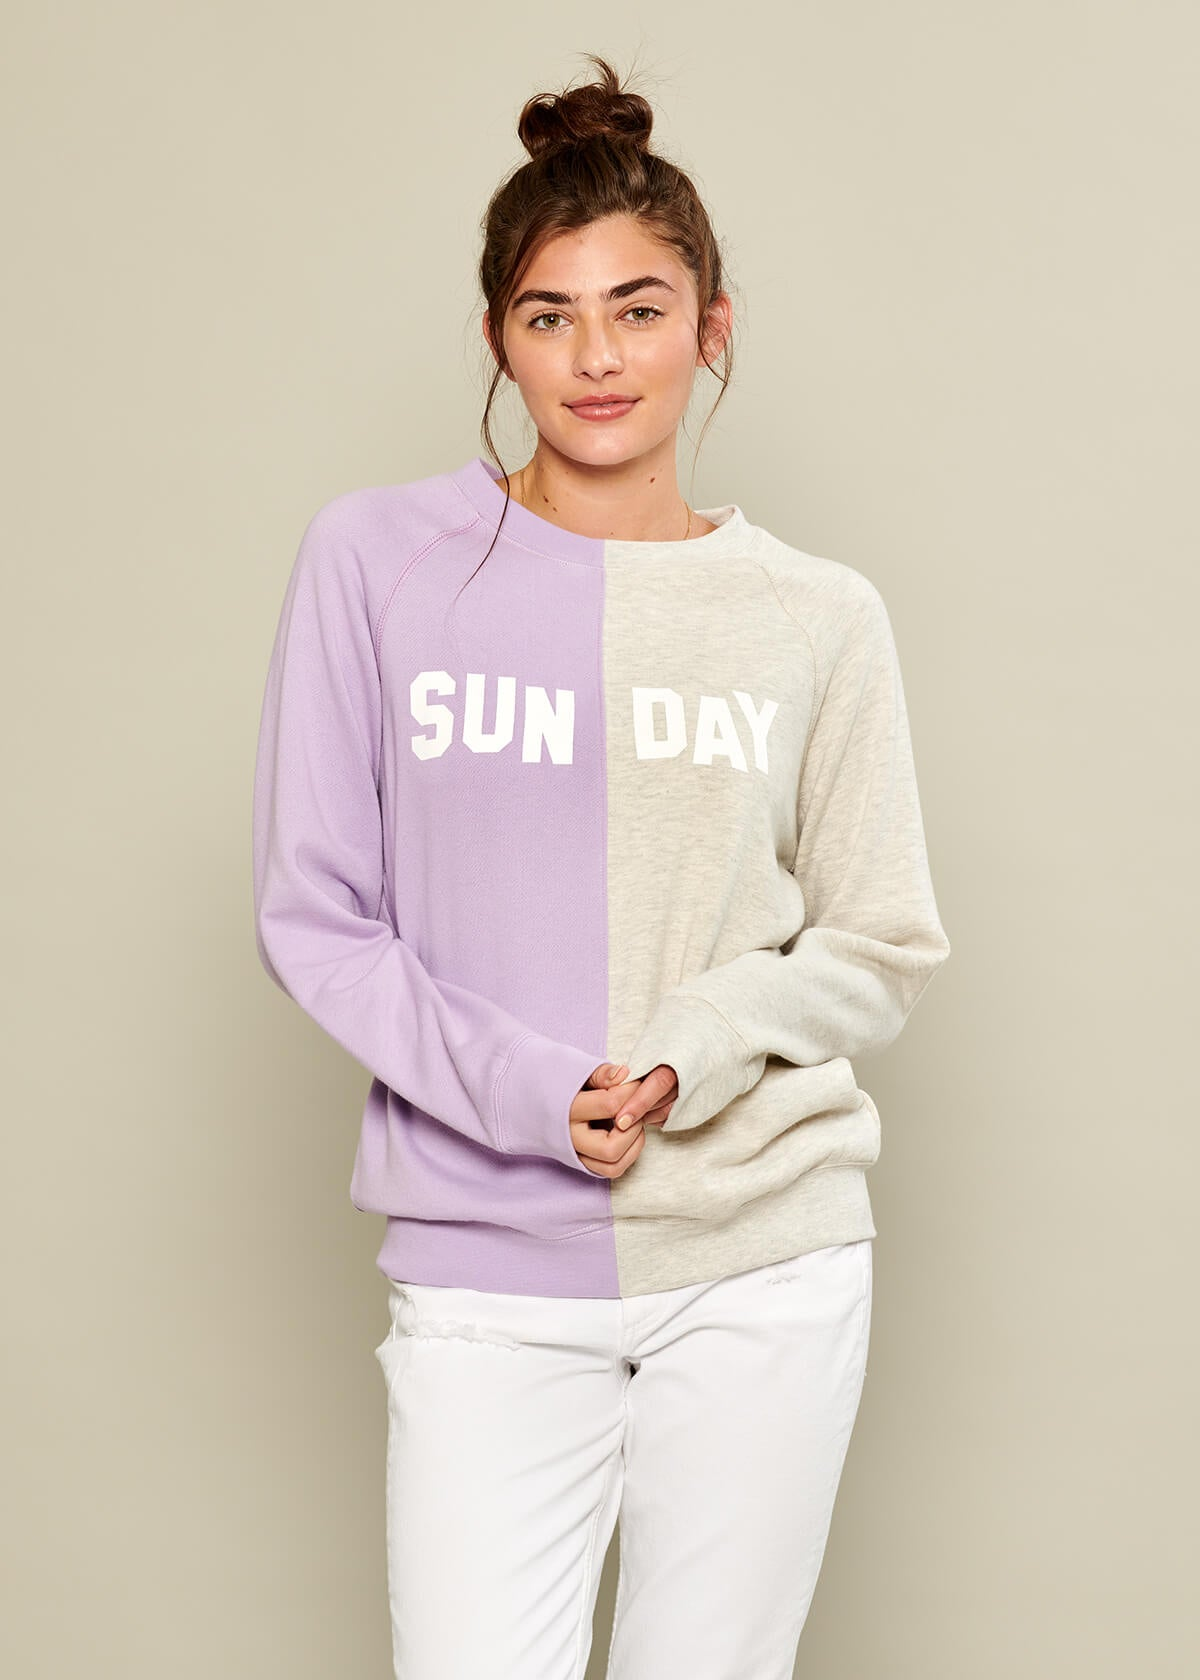 Rocky - Sweatshirt - Sunday - Lilac and Light Heather Gray